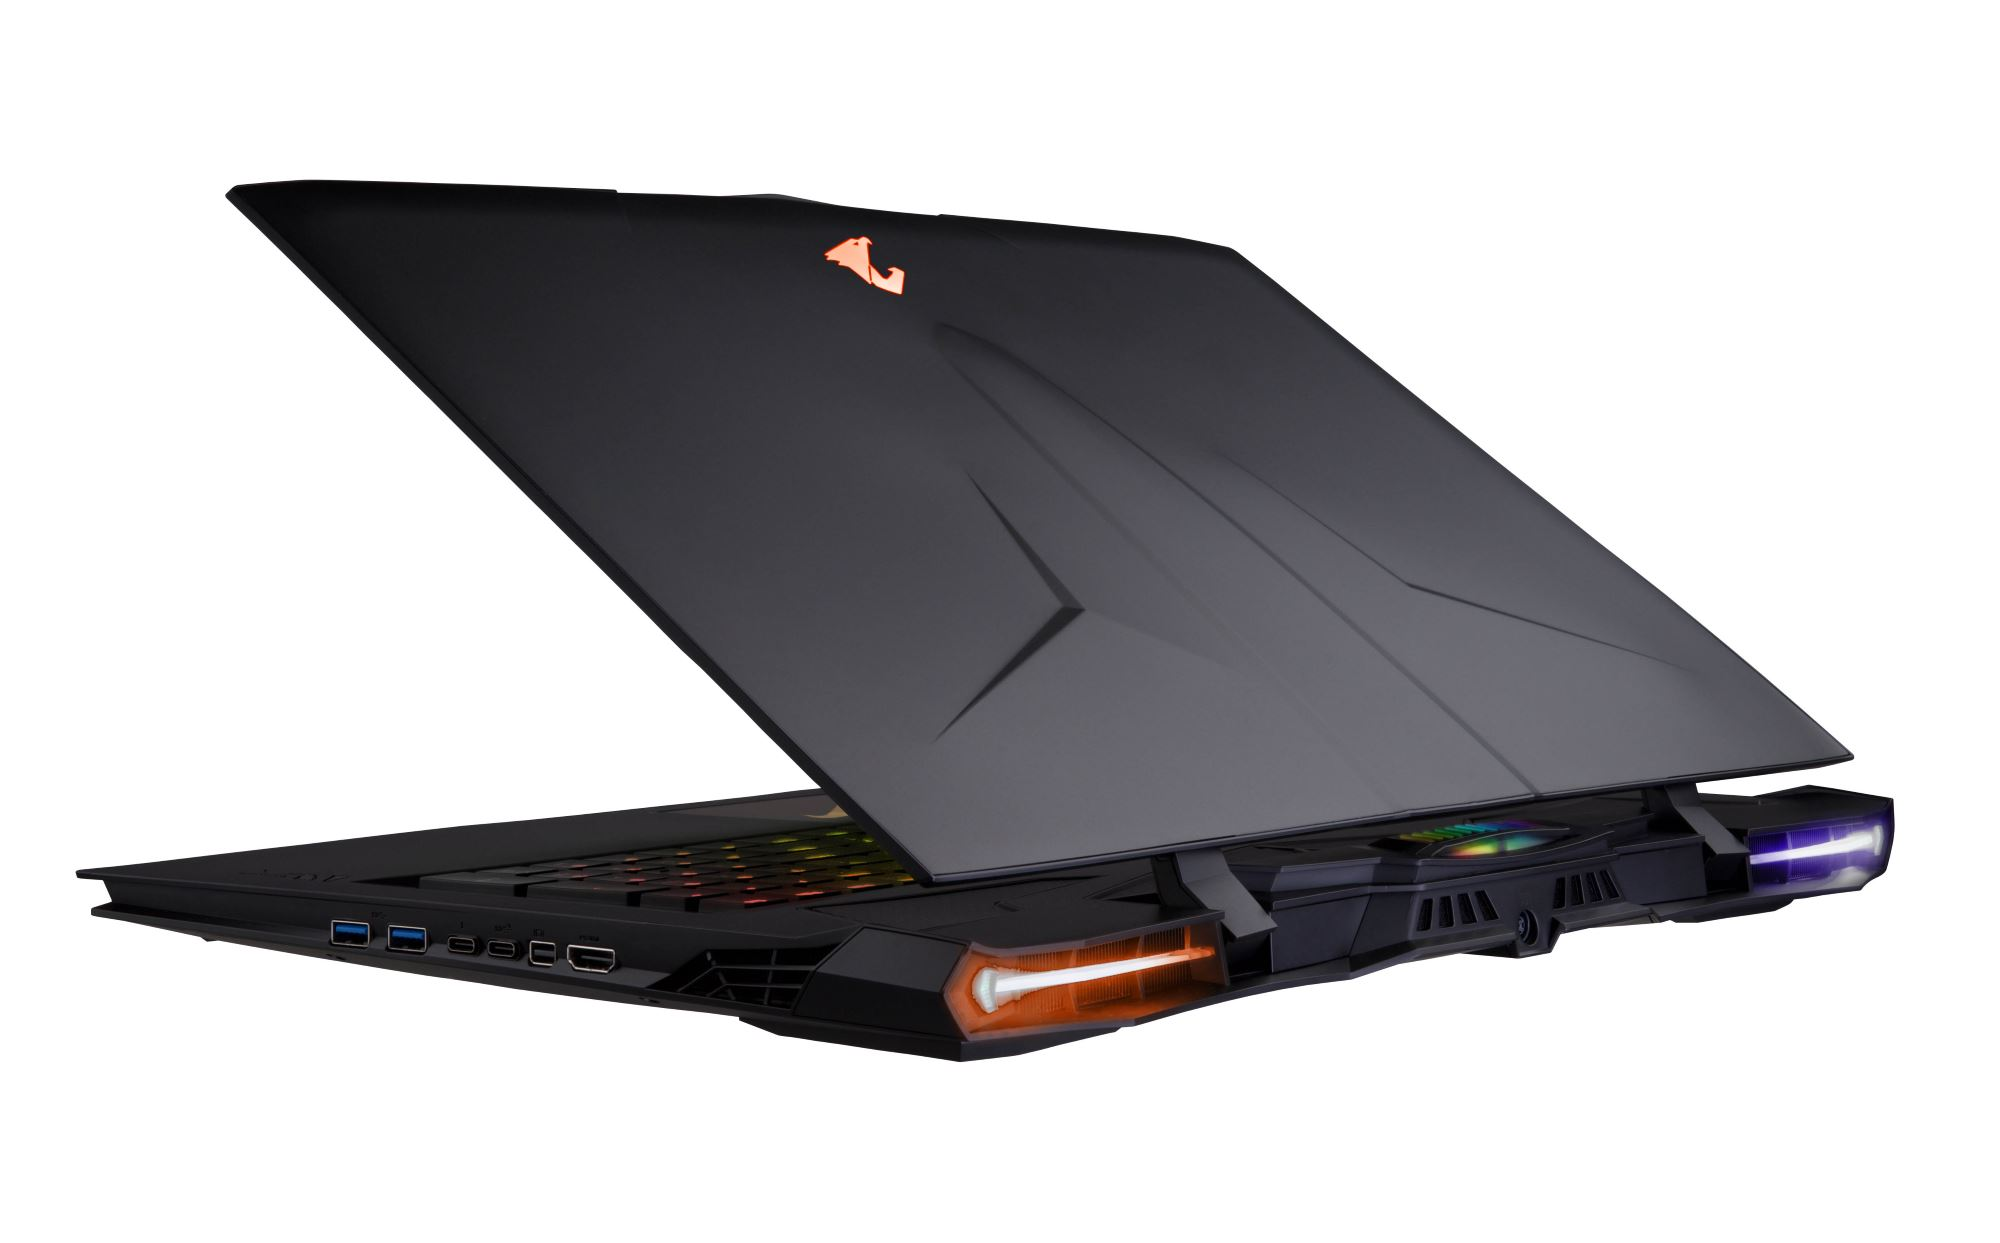 gigabyte launches the aorus x9 gaming laptop gtx 1070 sli and i7 7820hk. Black Bedroom Furniture Sets. Home Design Ideas